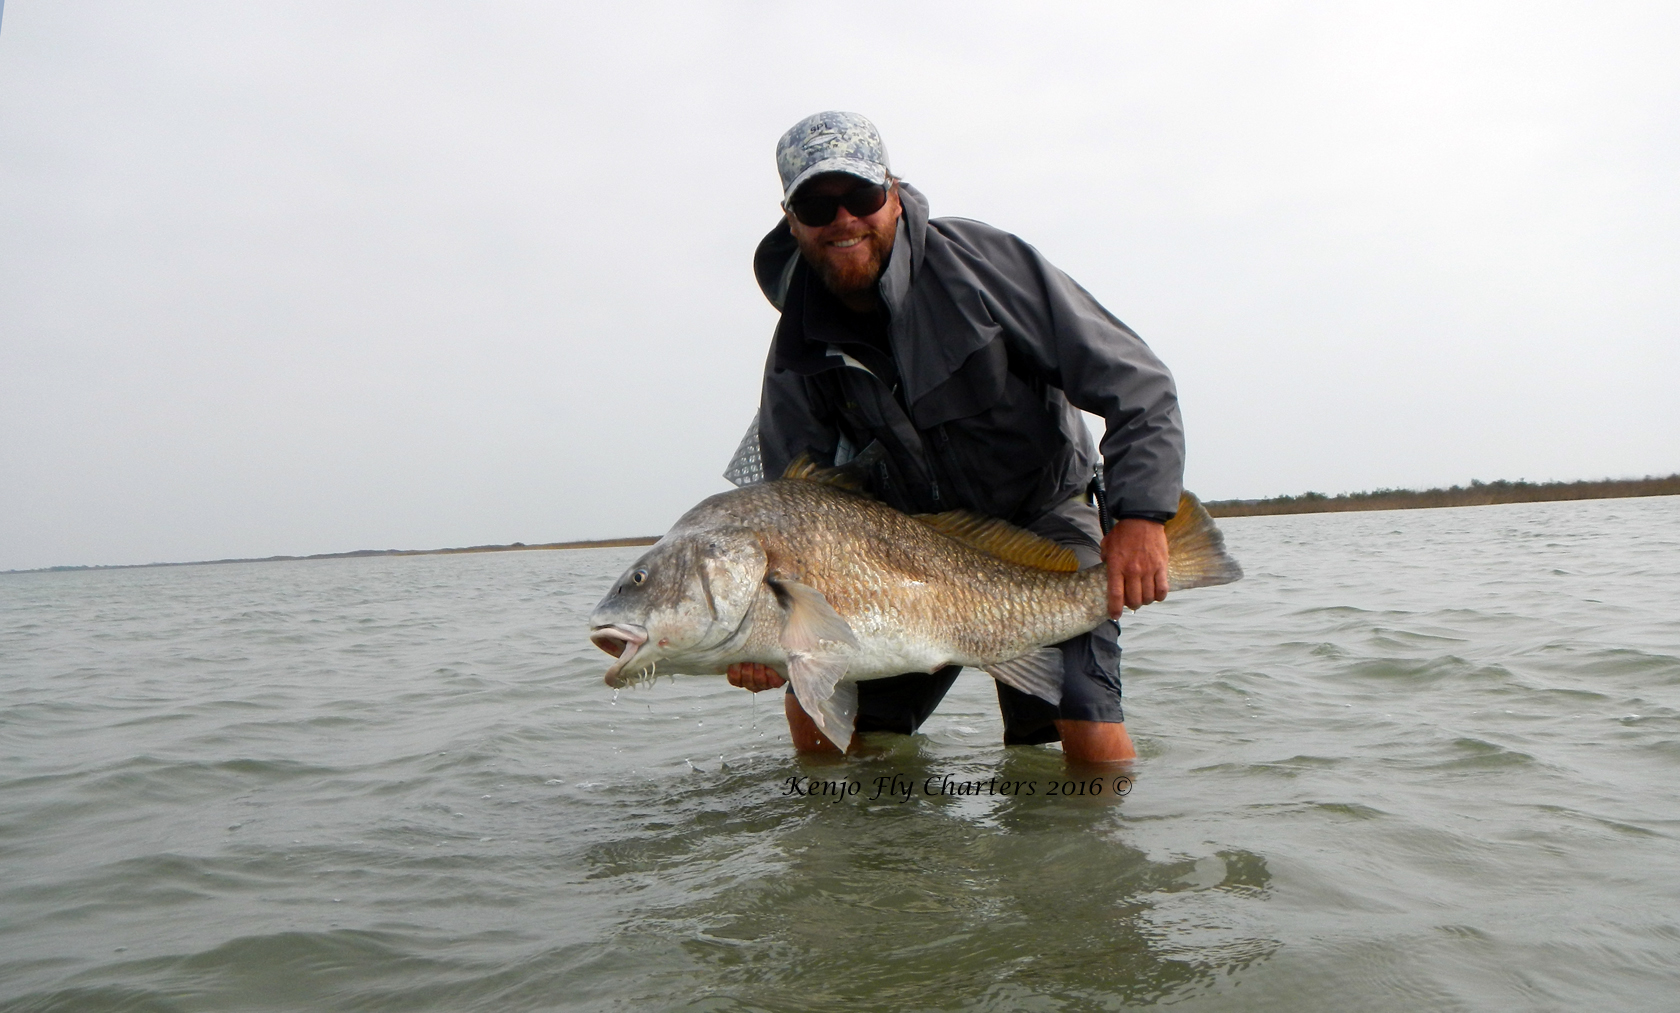 Fly fishing texas gulf coast kenjo fly fishing charters for Trout fishing in texas